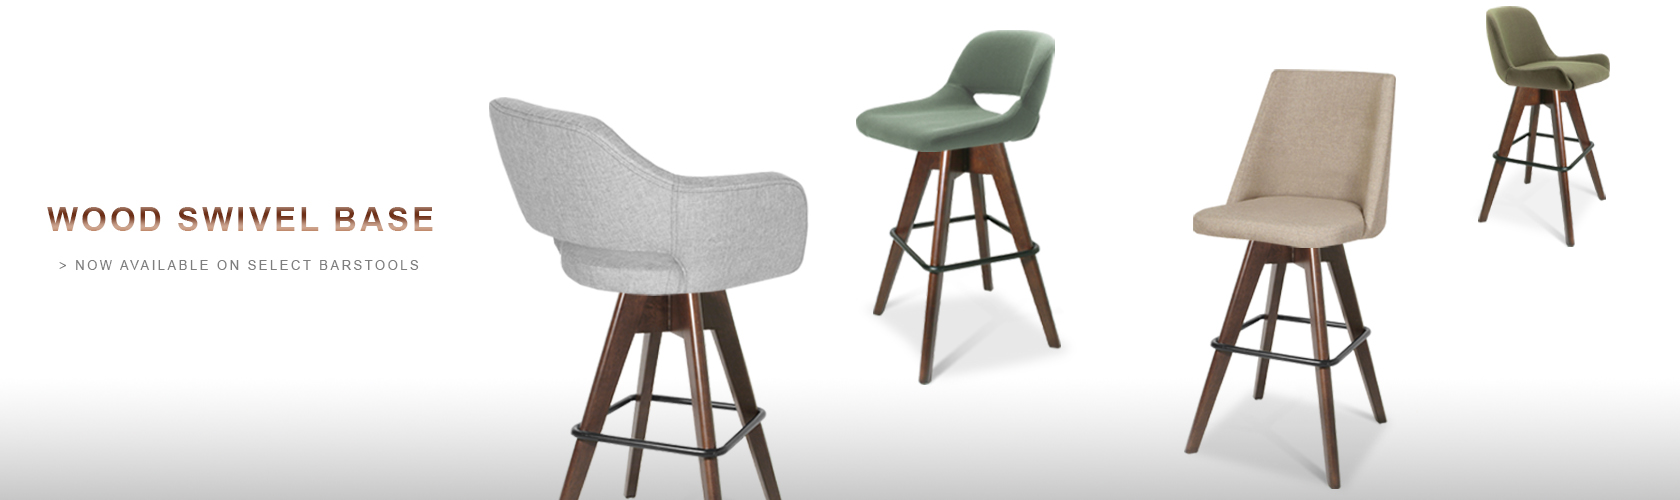 Tremendous Isa International Custom Furniture Supplier Pabps2019 Chair Design Images Pabps2019Com